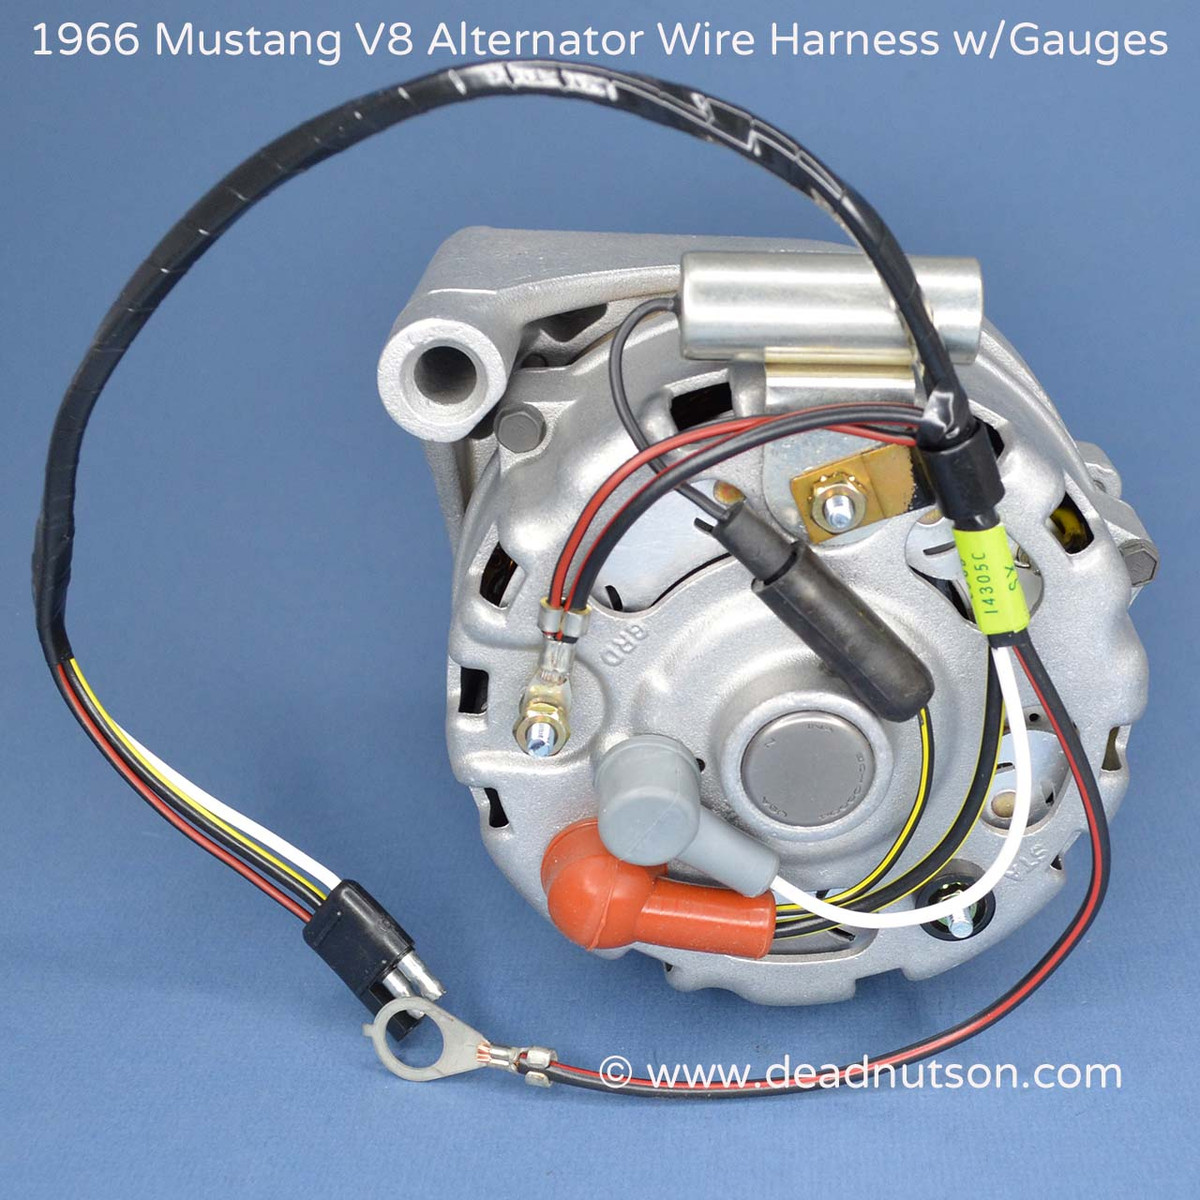 1964 1965 mustang alternator wire harness tag 289 w instrument 1968 mustang wiring harness diagram 1964 [ 1200 x 1200 Pixel ]